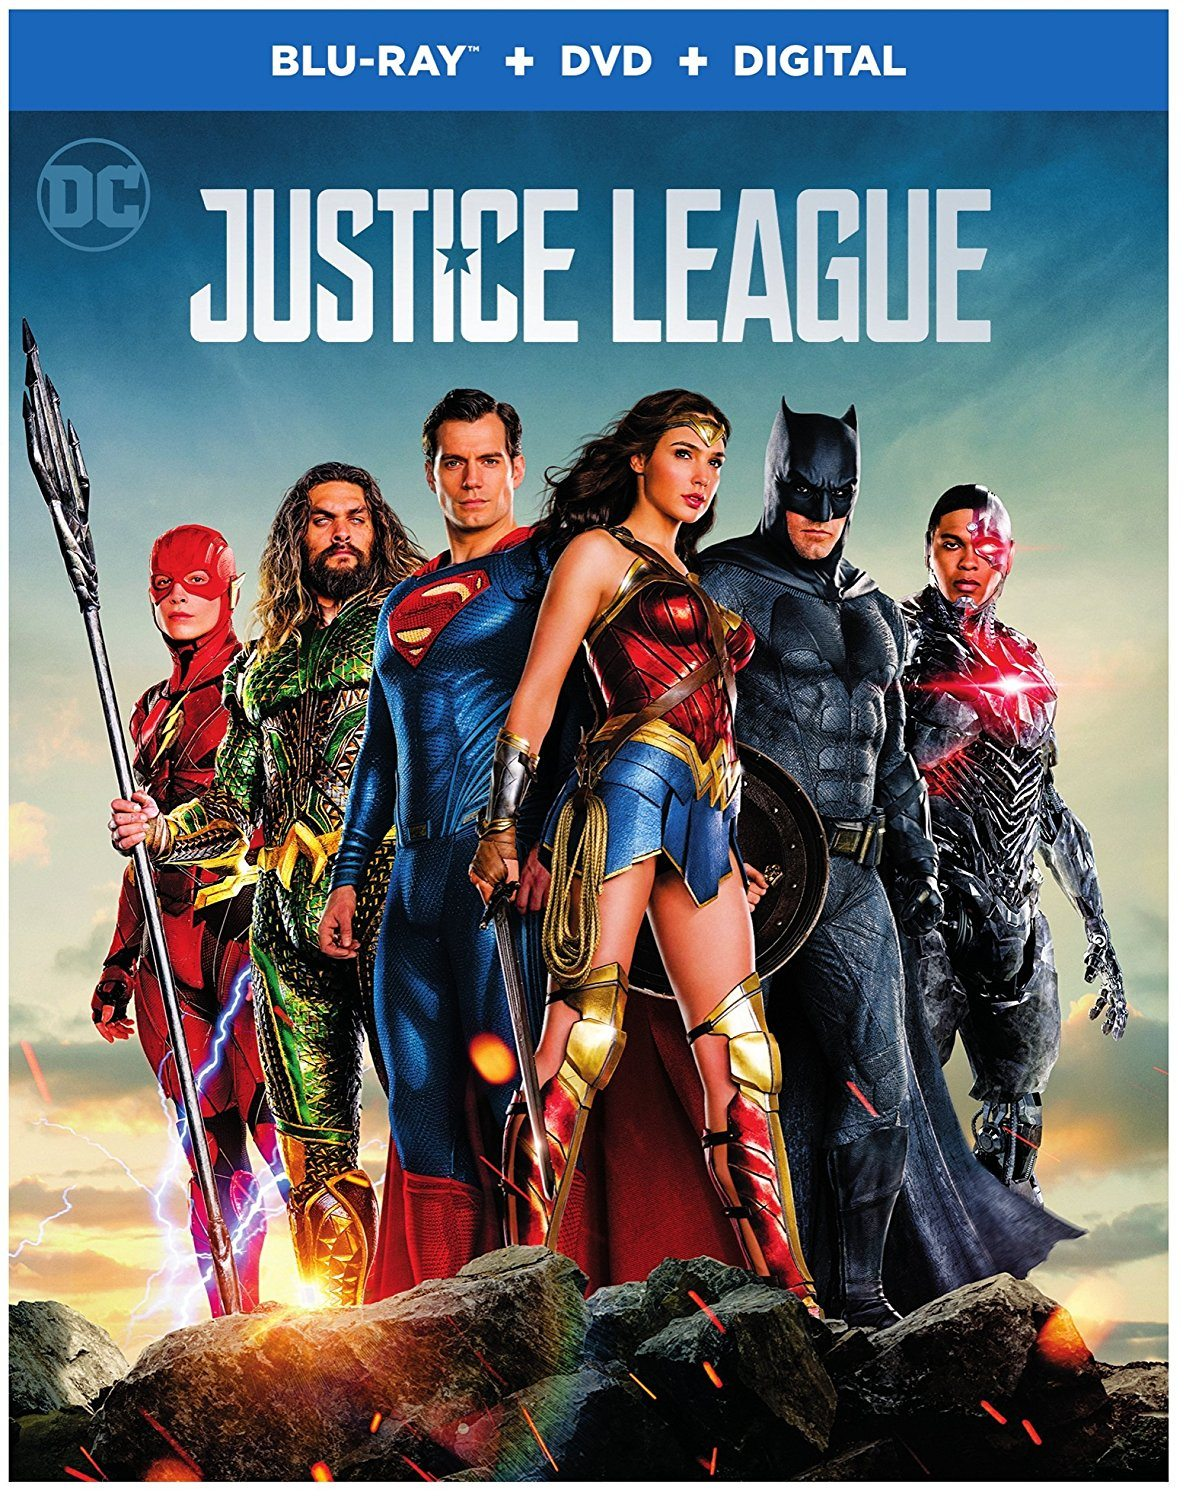 Blu-ray Review - Justice League (2017)